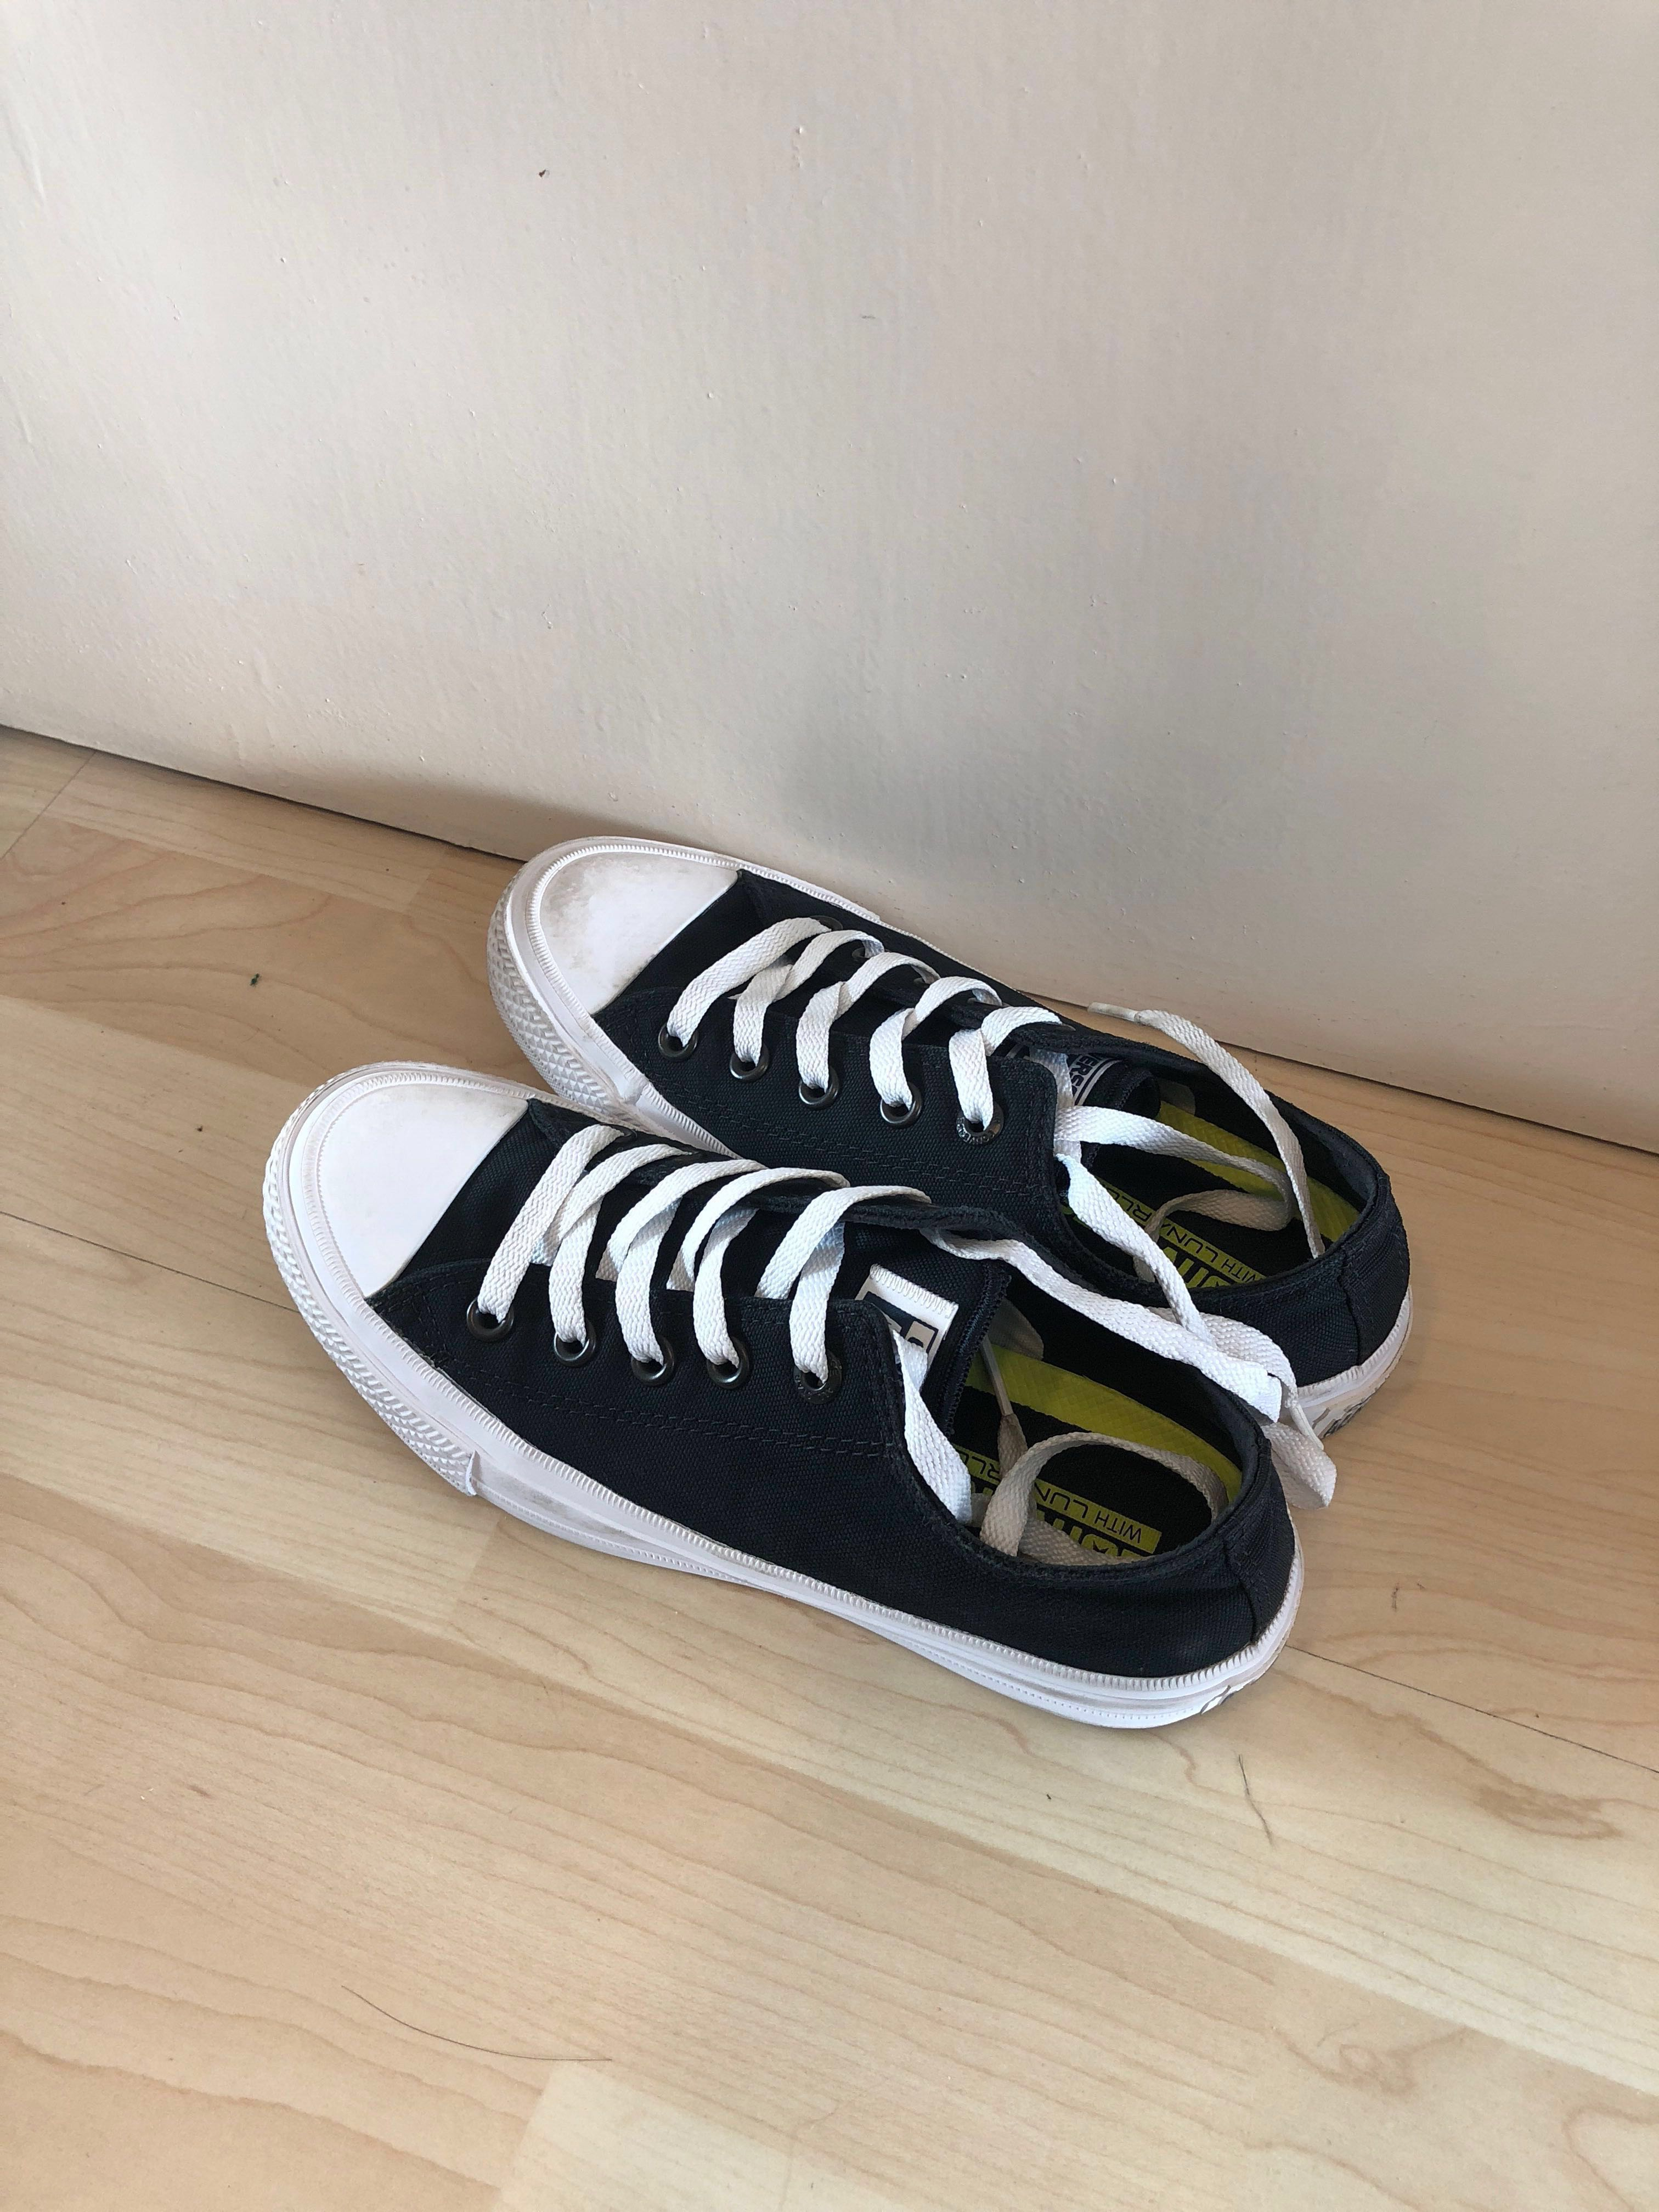 213e155bb9af authentic almost new converse chuck ii sneakers